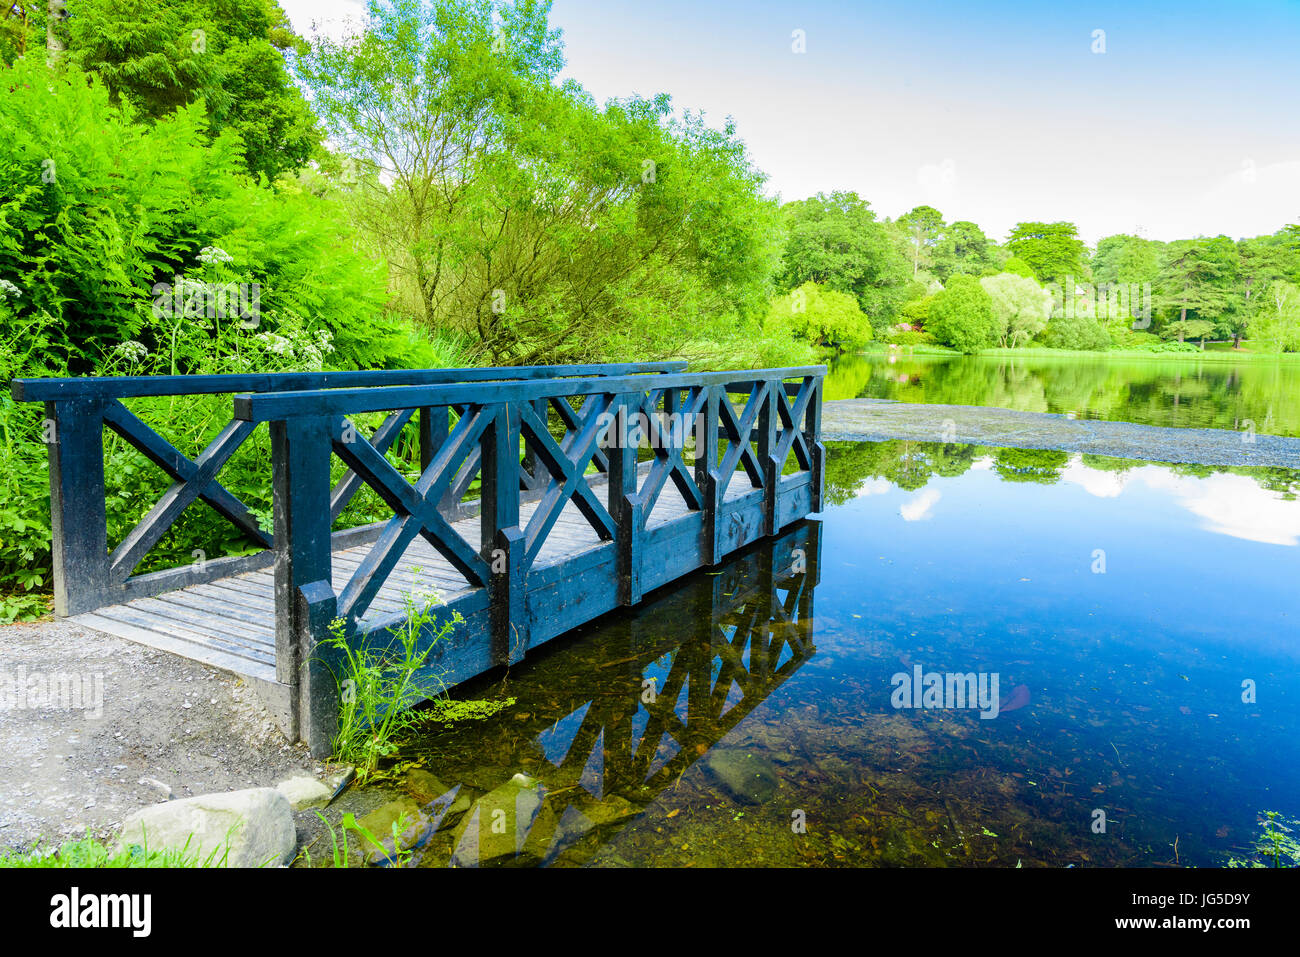 Small pier leading over a lake on a sunny day. - Stock Image